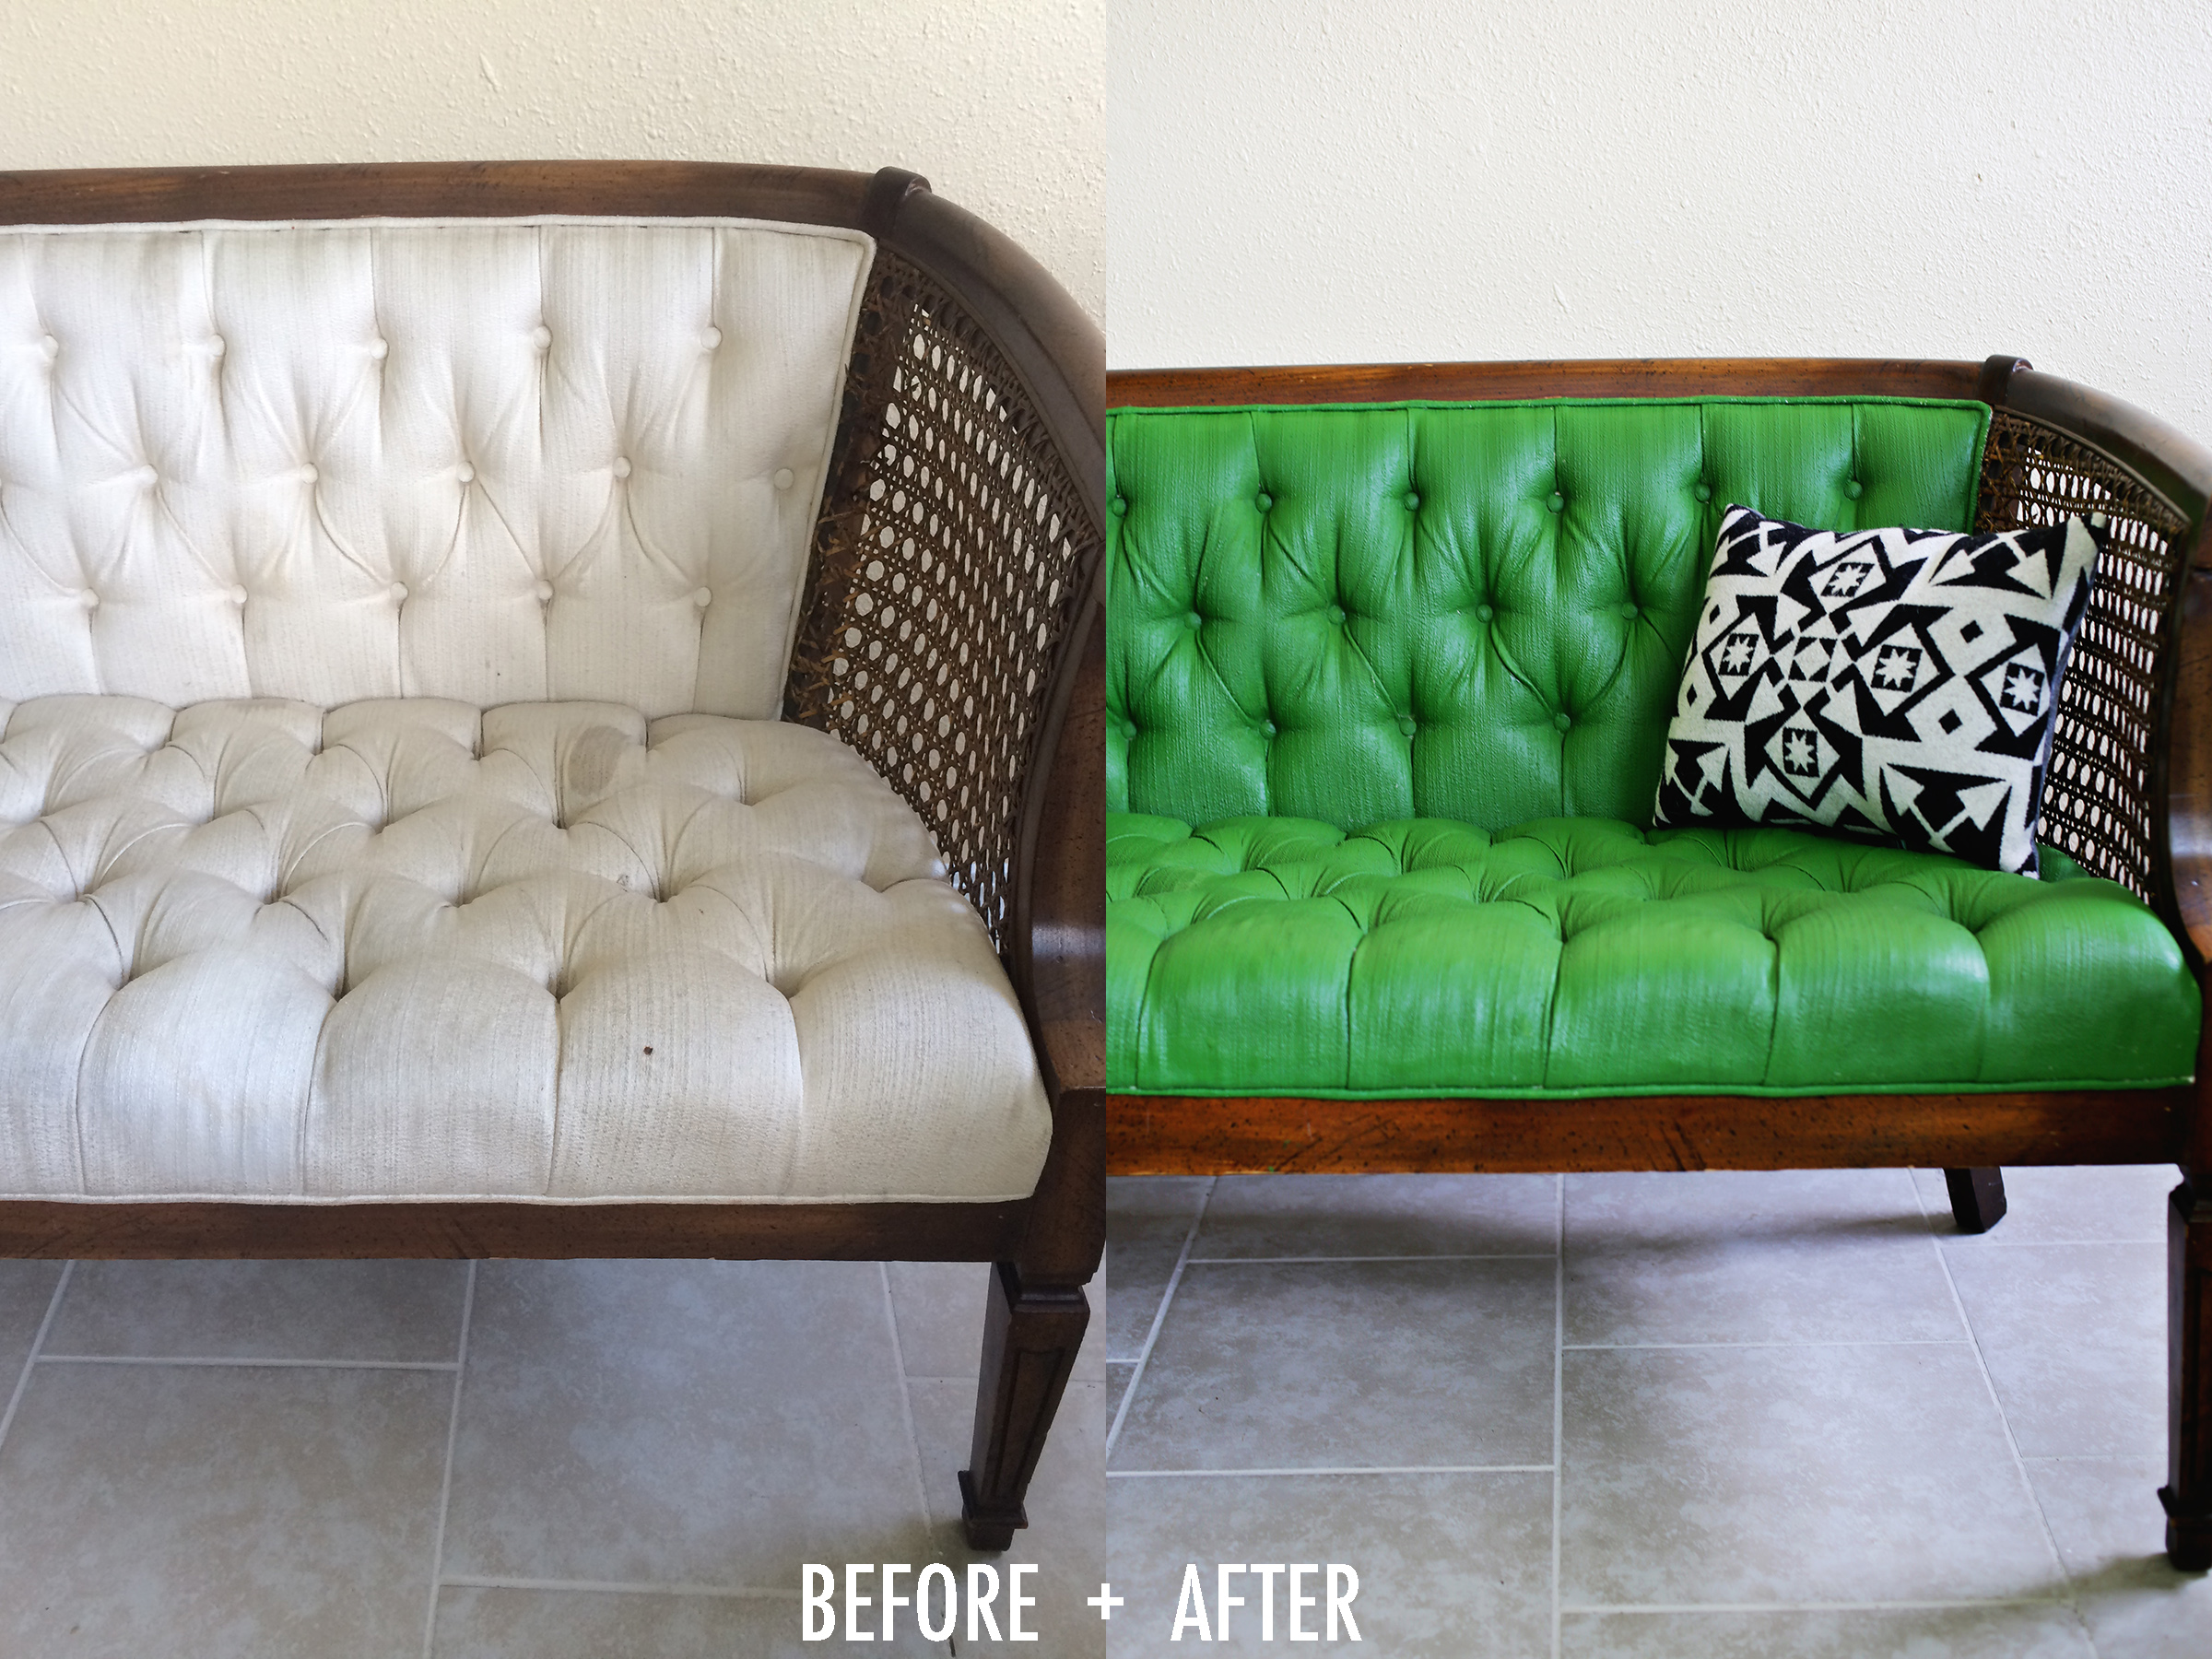 Spray Painting Upholstered Furniture #30: Before We Begin, Itu0026#39;s Important To Note That The Couch I Chose To Paint Was Damaged. Jeremy Acquired It When We Had Our Vintage Store And He Worked In The ...